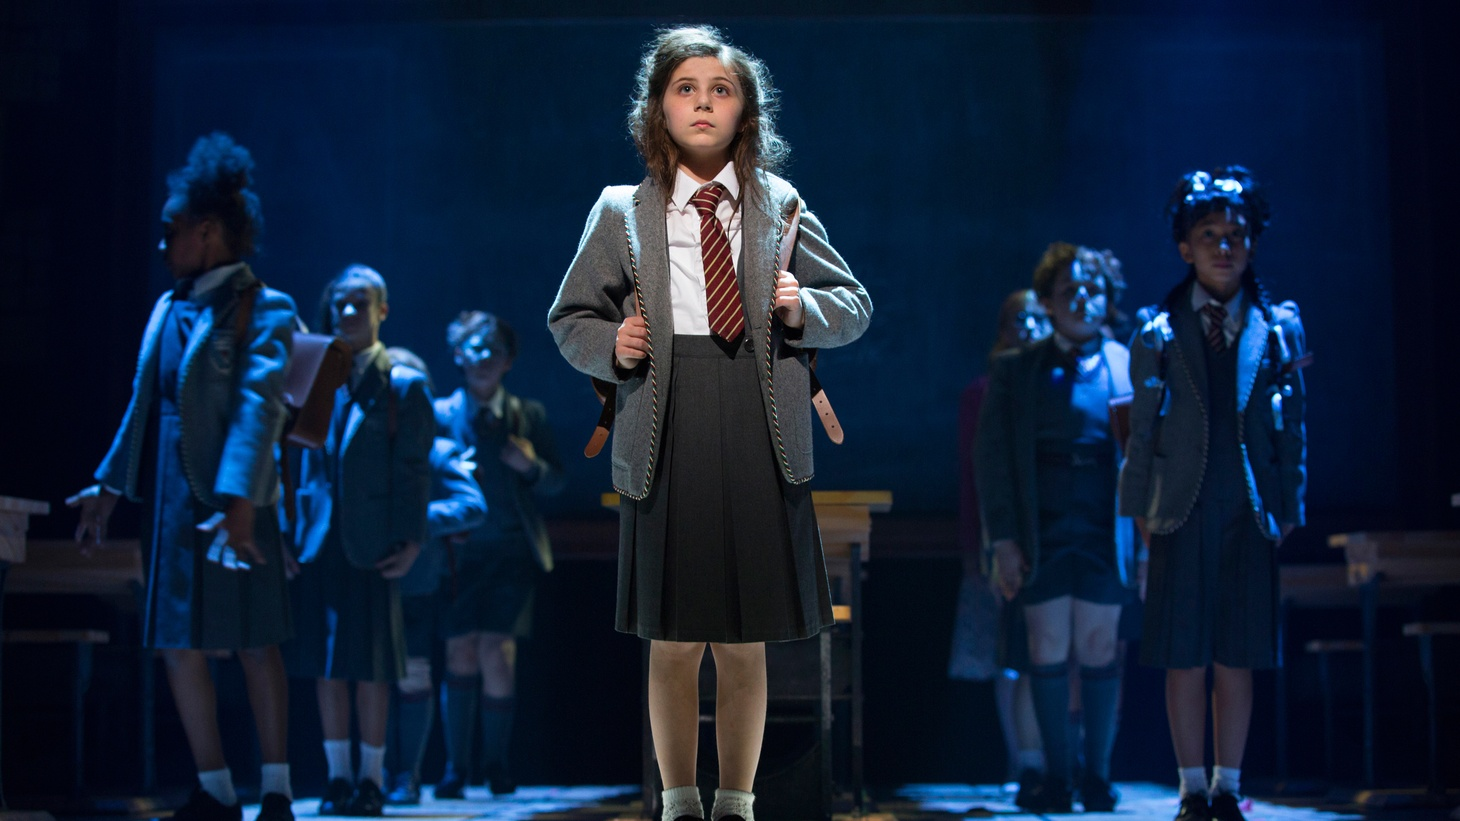 The Royal Shakespeare Company has adapted Raoul Dahl's Matilda into a delightful musical and, now, after stopping in New York to pick up some Tony Awards, it's at the Ahmanson Theatre.